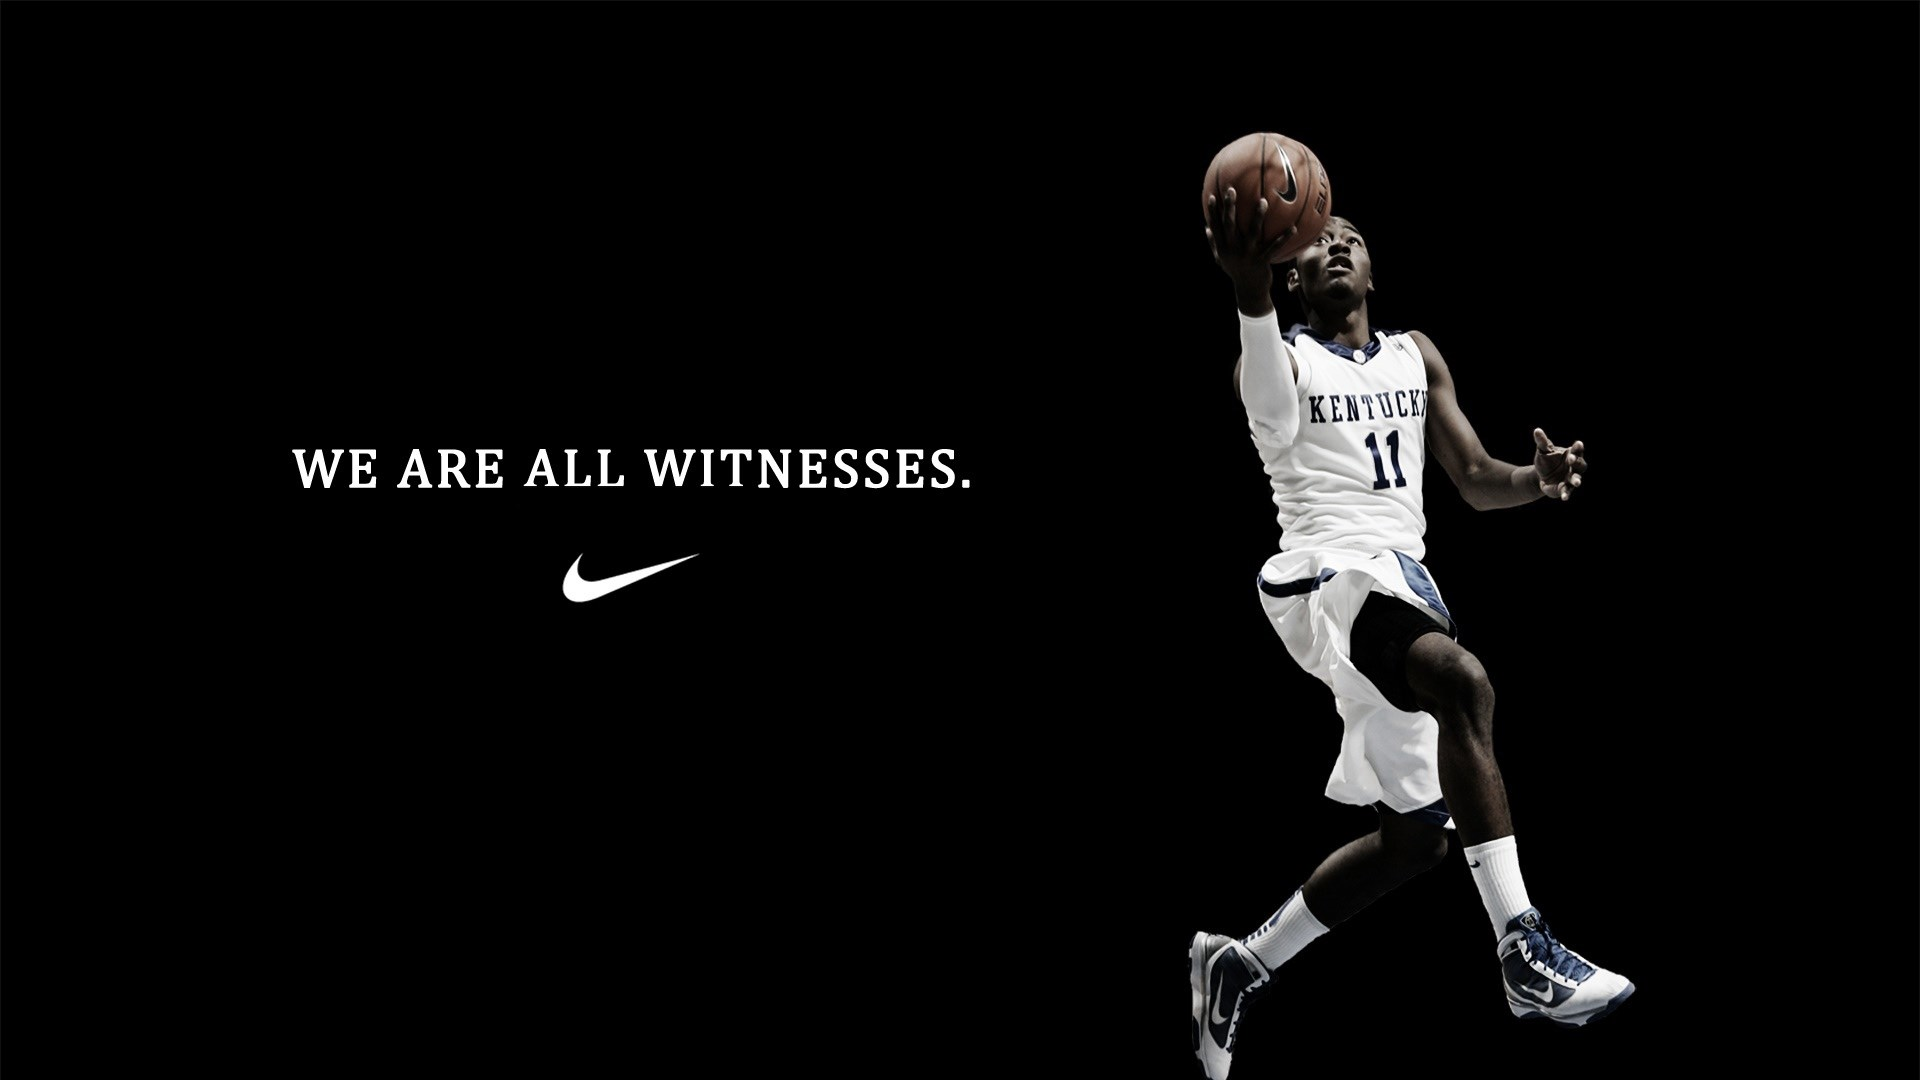 basketball-guy-form-inscription-nike-advertizing-1920x1080-wallpaper-wp3602977